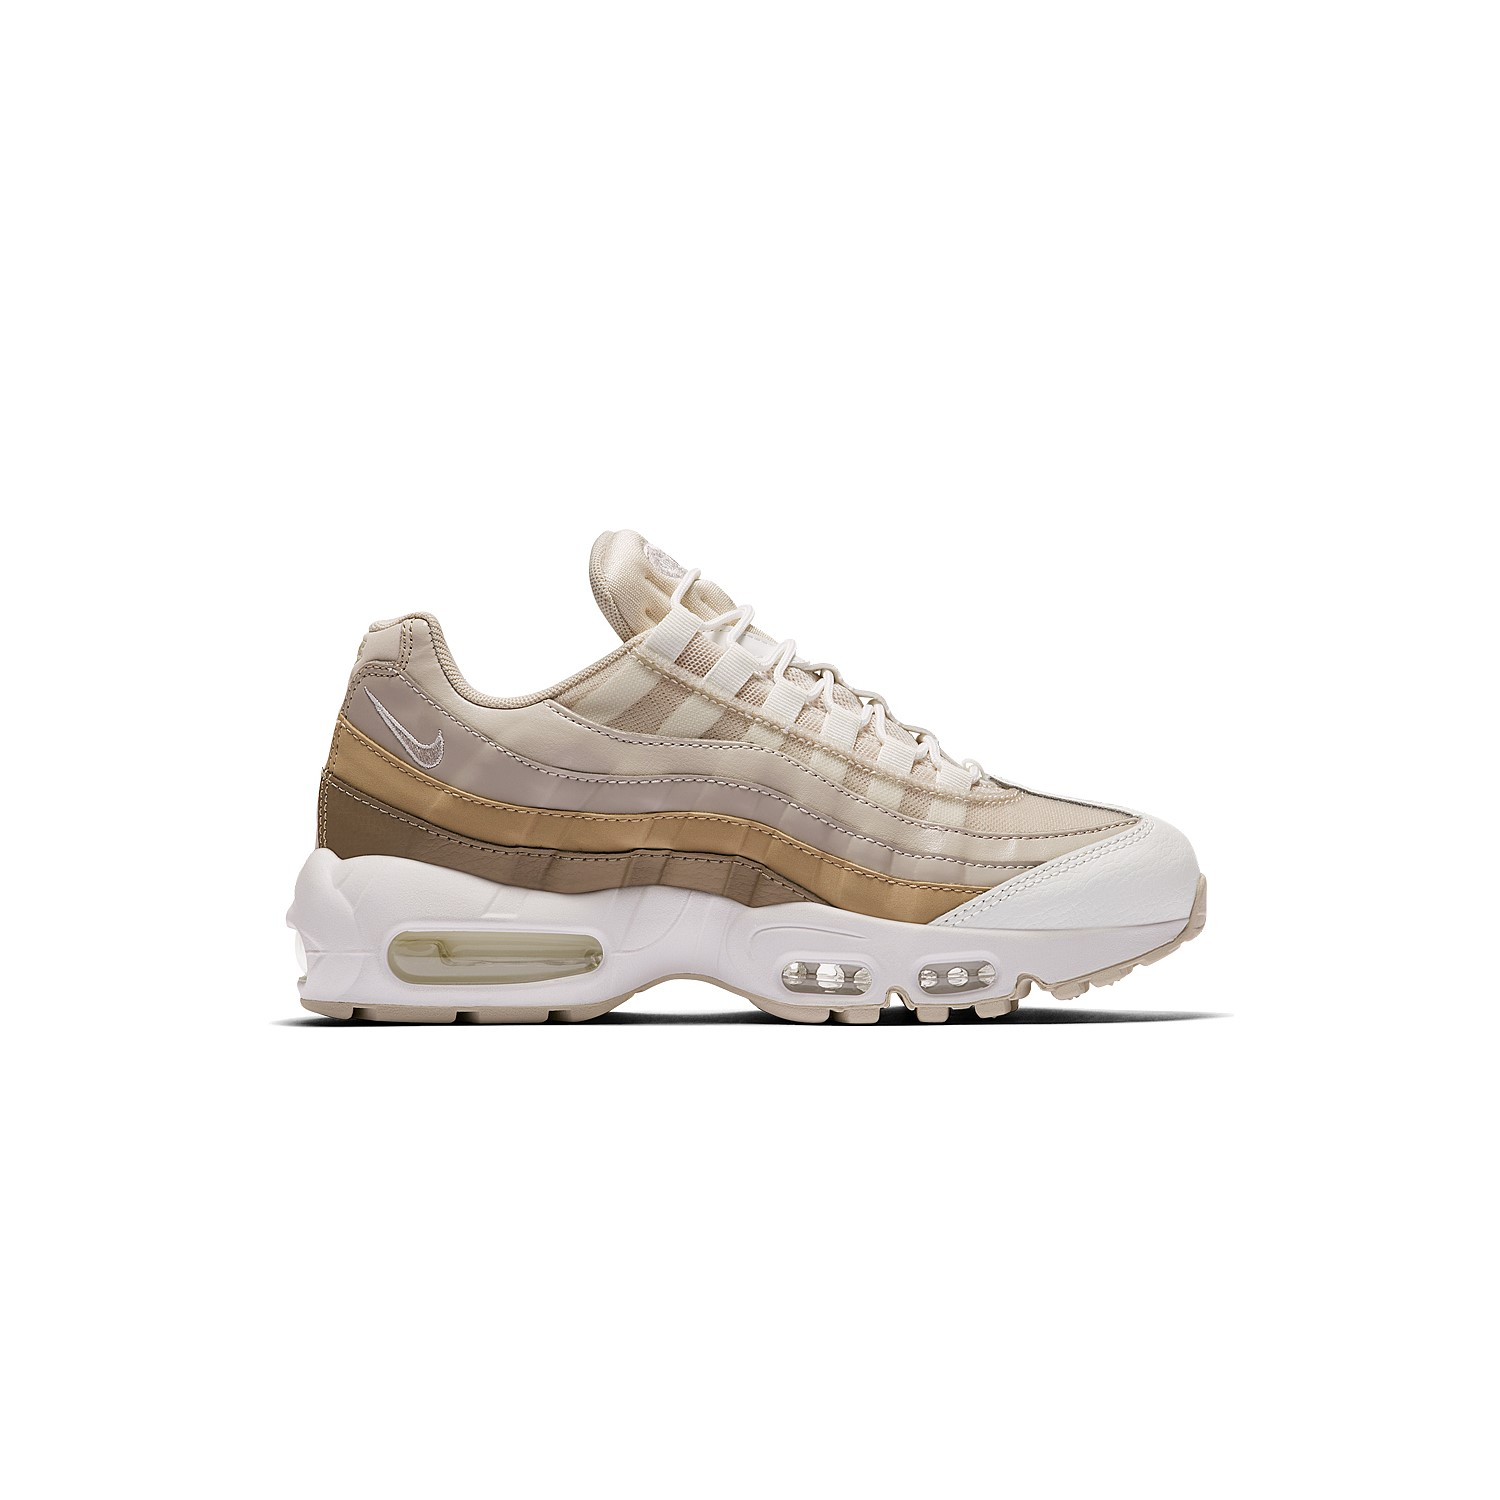 3eb4a14767 Women's Casual Shoes | Shop Women's Casual Footwear Online | Stirling  Sports - Air Max 95 Womens